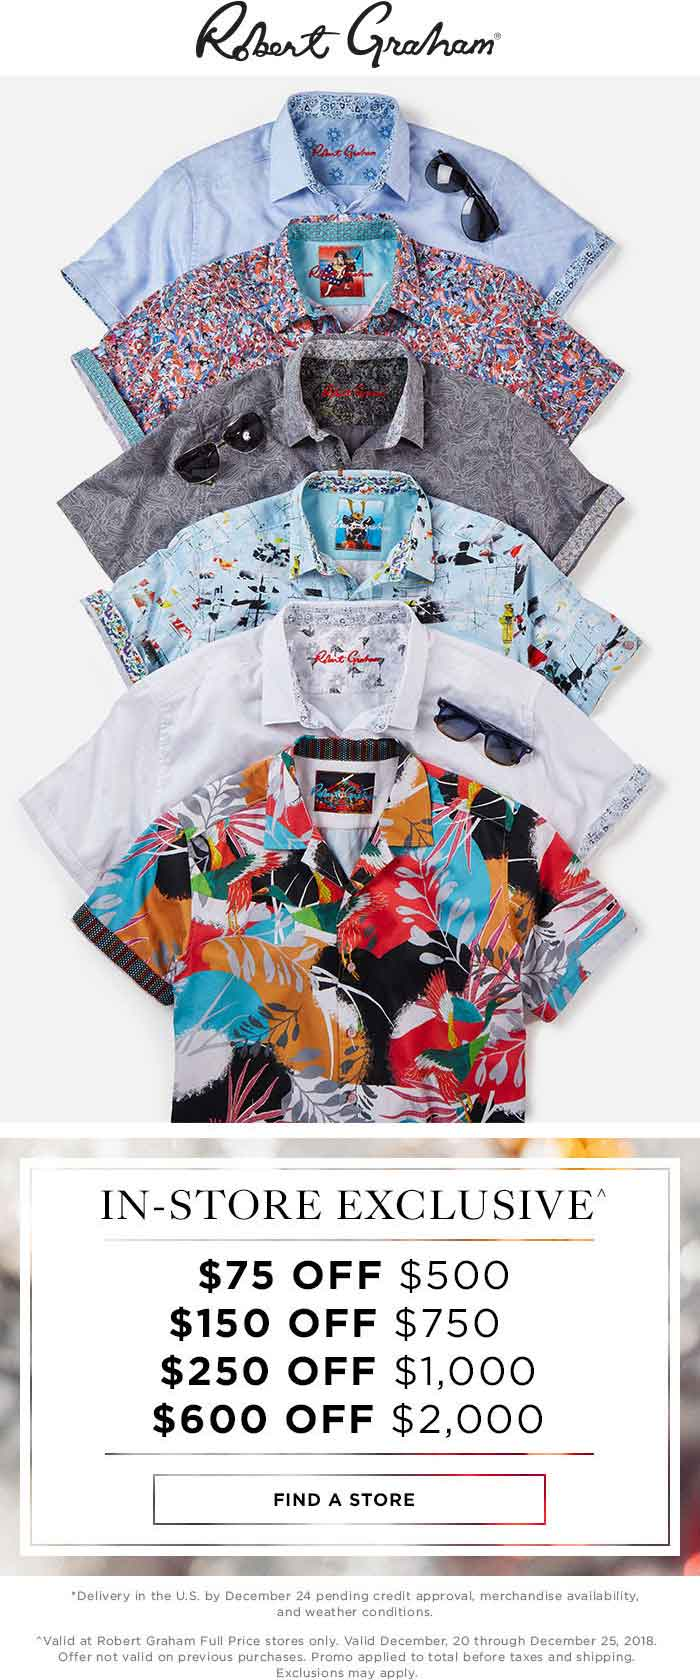 Robert Graham coupons & promo code for [August 2020]